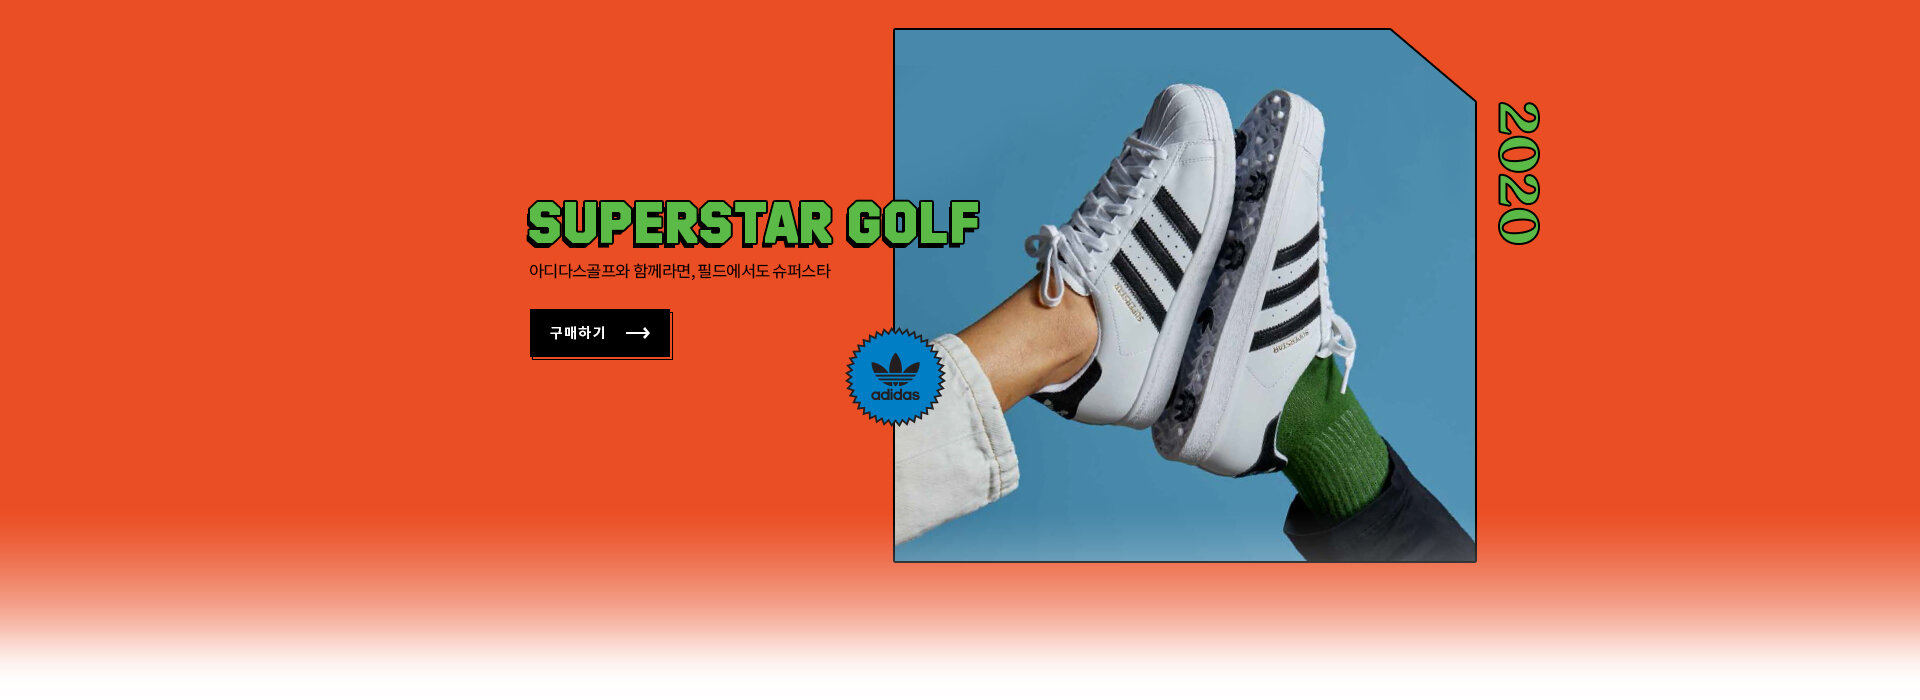 golf superstar